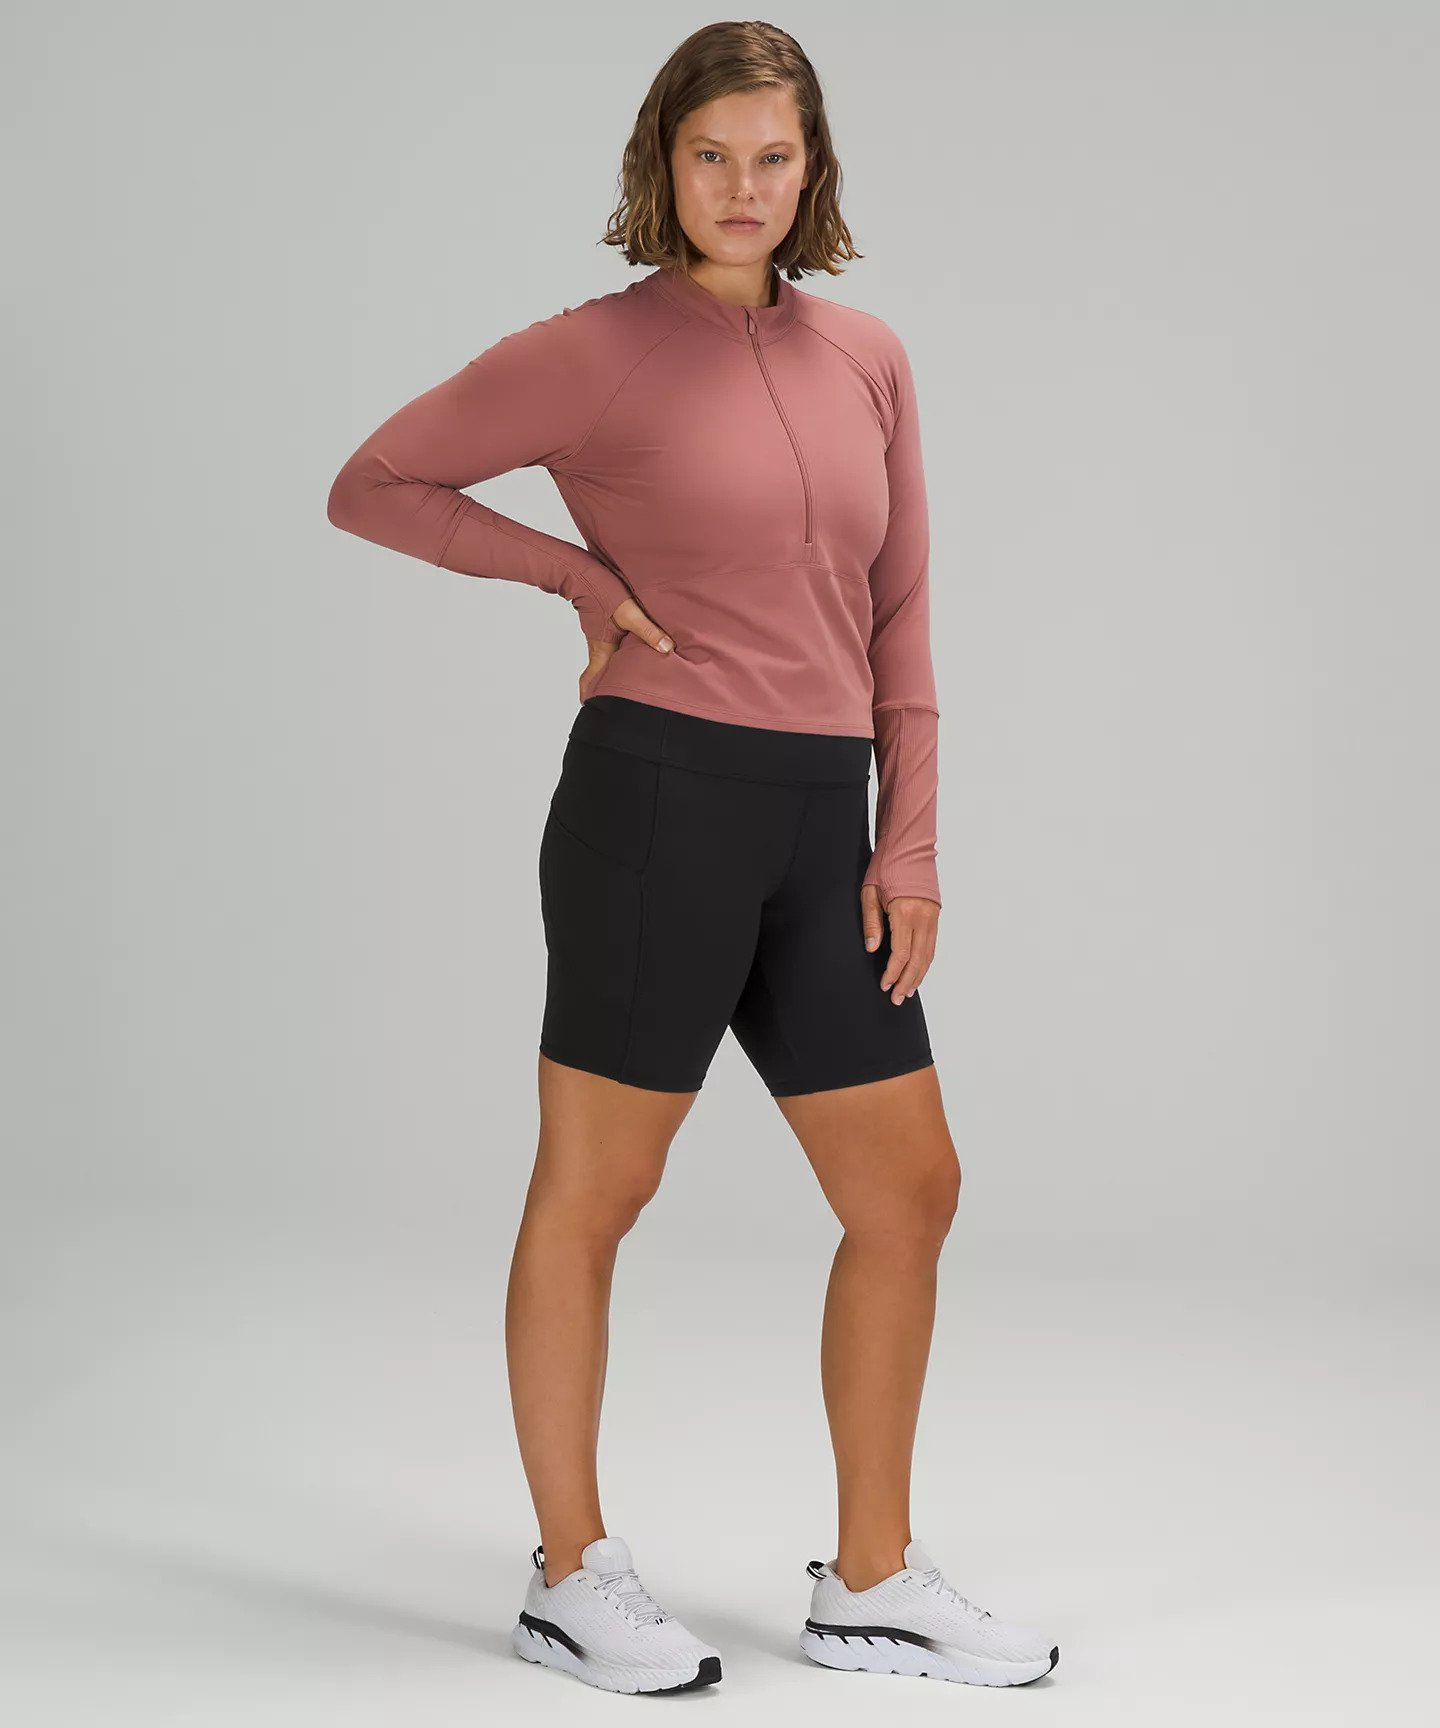 Lululemon Fast and Free High-Rise Short